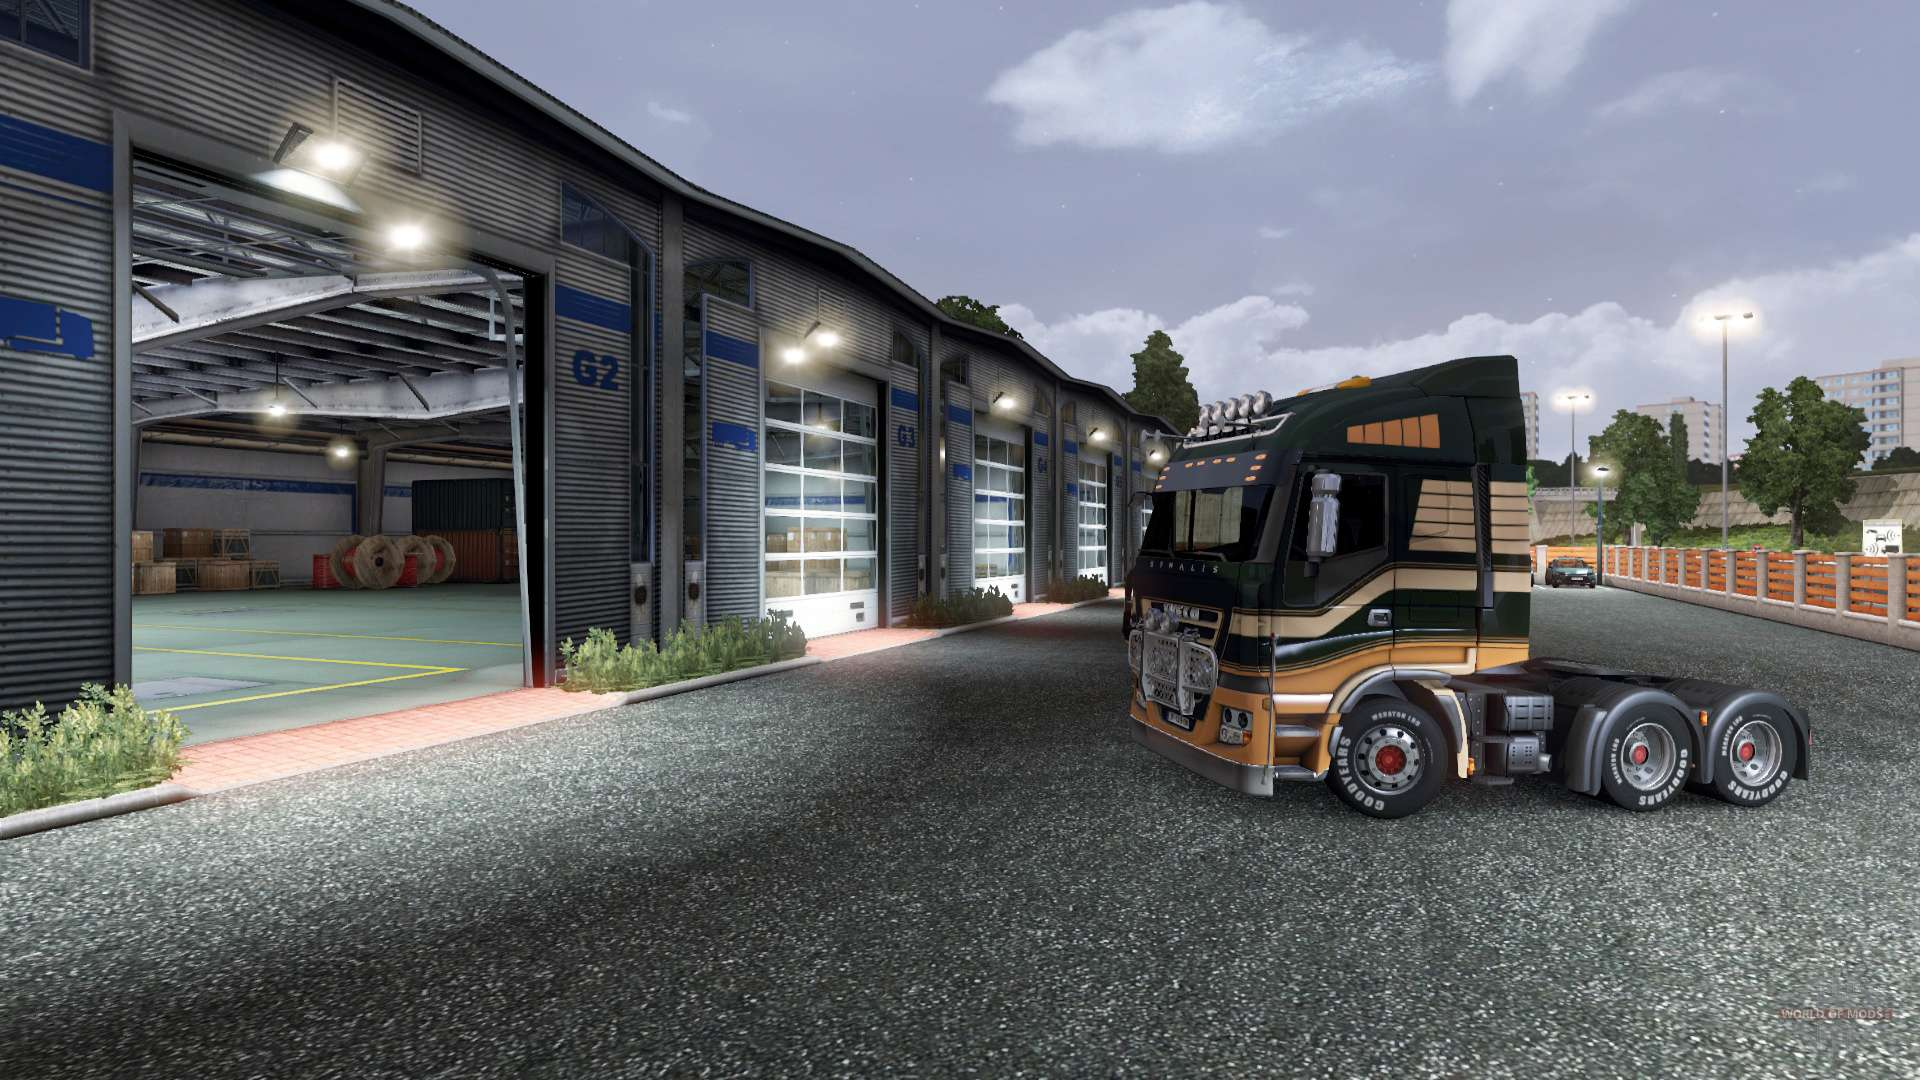 auparavant ouverture de porte de garage pour euro truck simulator 2. Black Bedroom Furniture Sets. Home Design Ideas